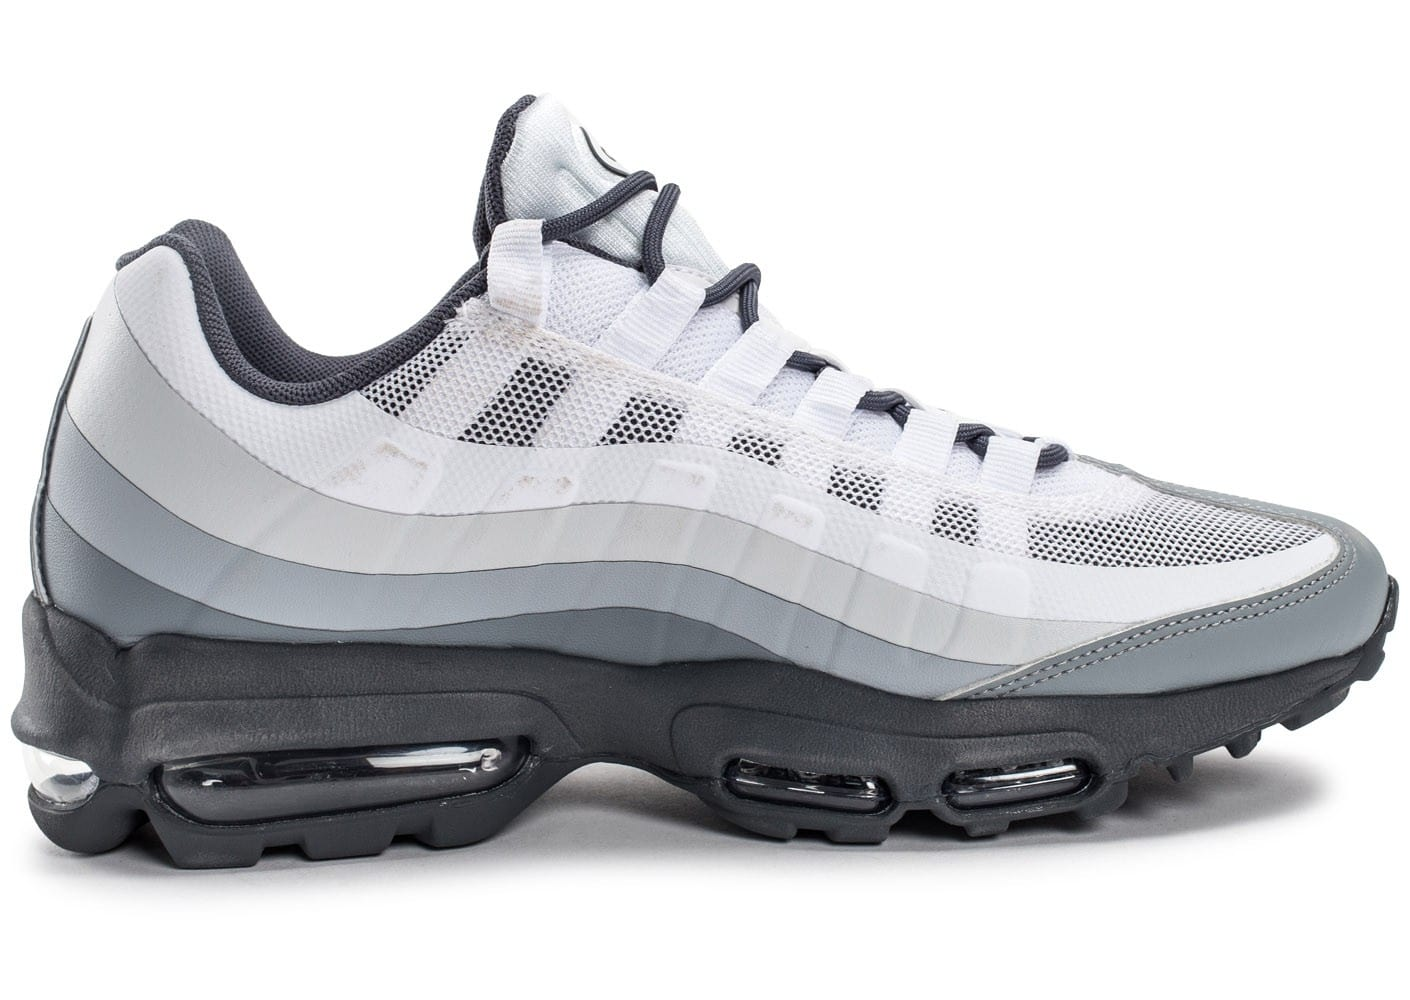 nike air max 95 ultra essential blanche et grise chaussures baskets homme chausport. Black Bedroom Furniture Sets. Home Design Ideas